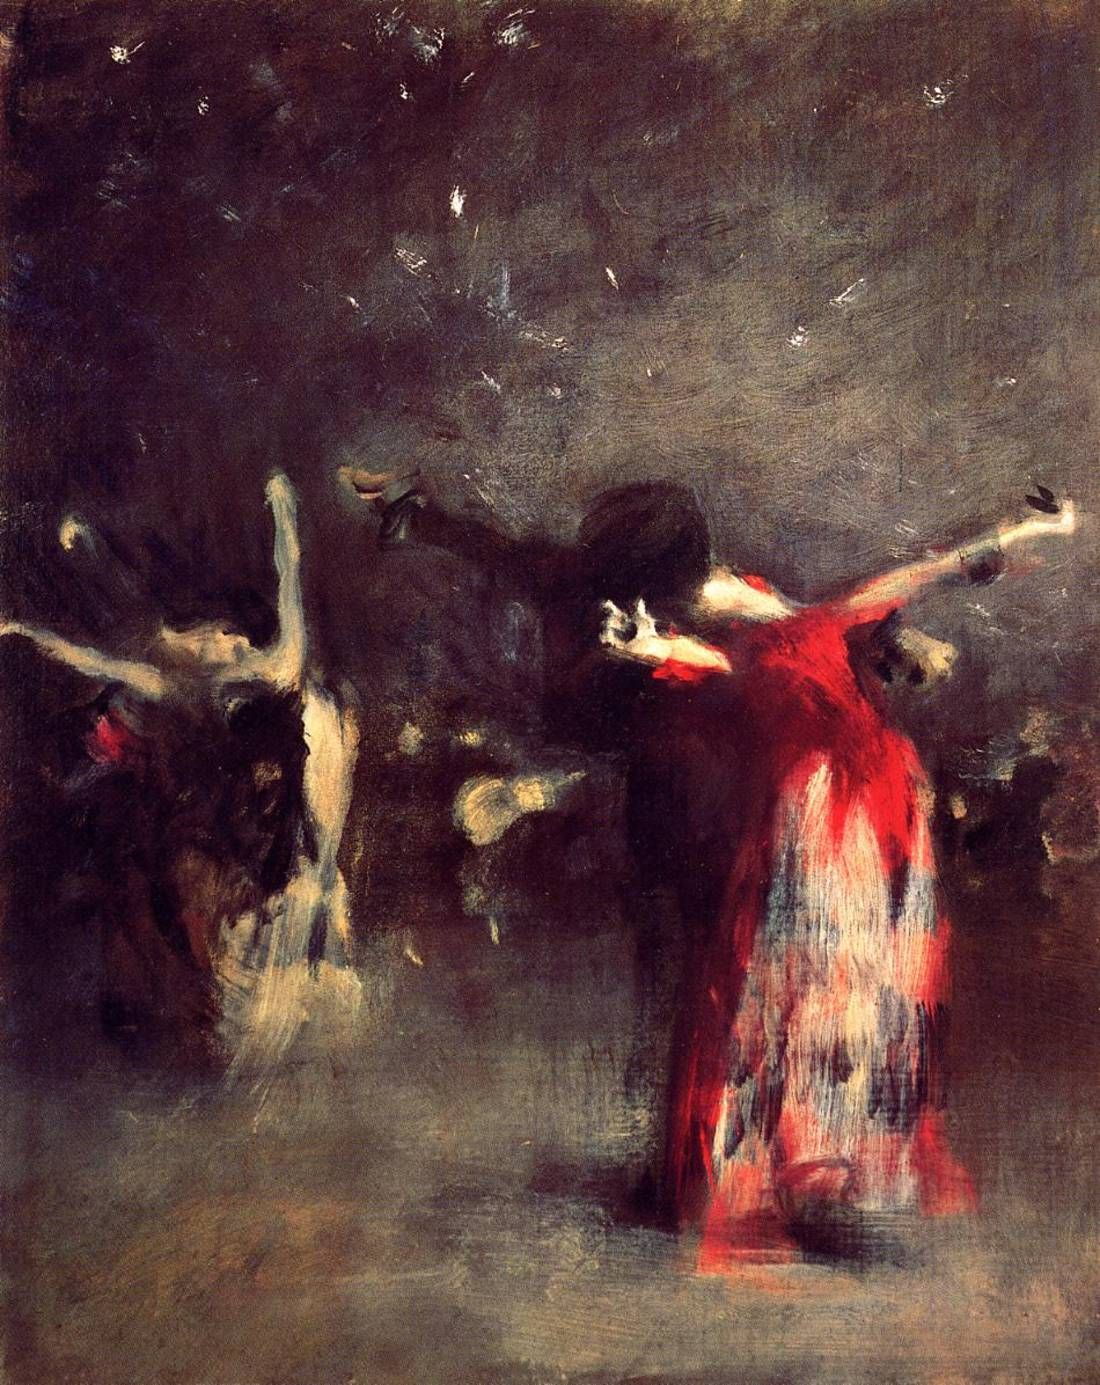 John Singer Sargent (1856-1925) - Study for The Spanish Dance, 1879-80